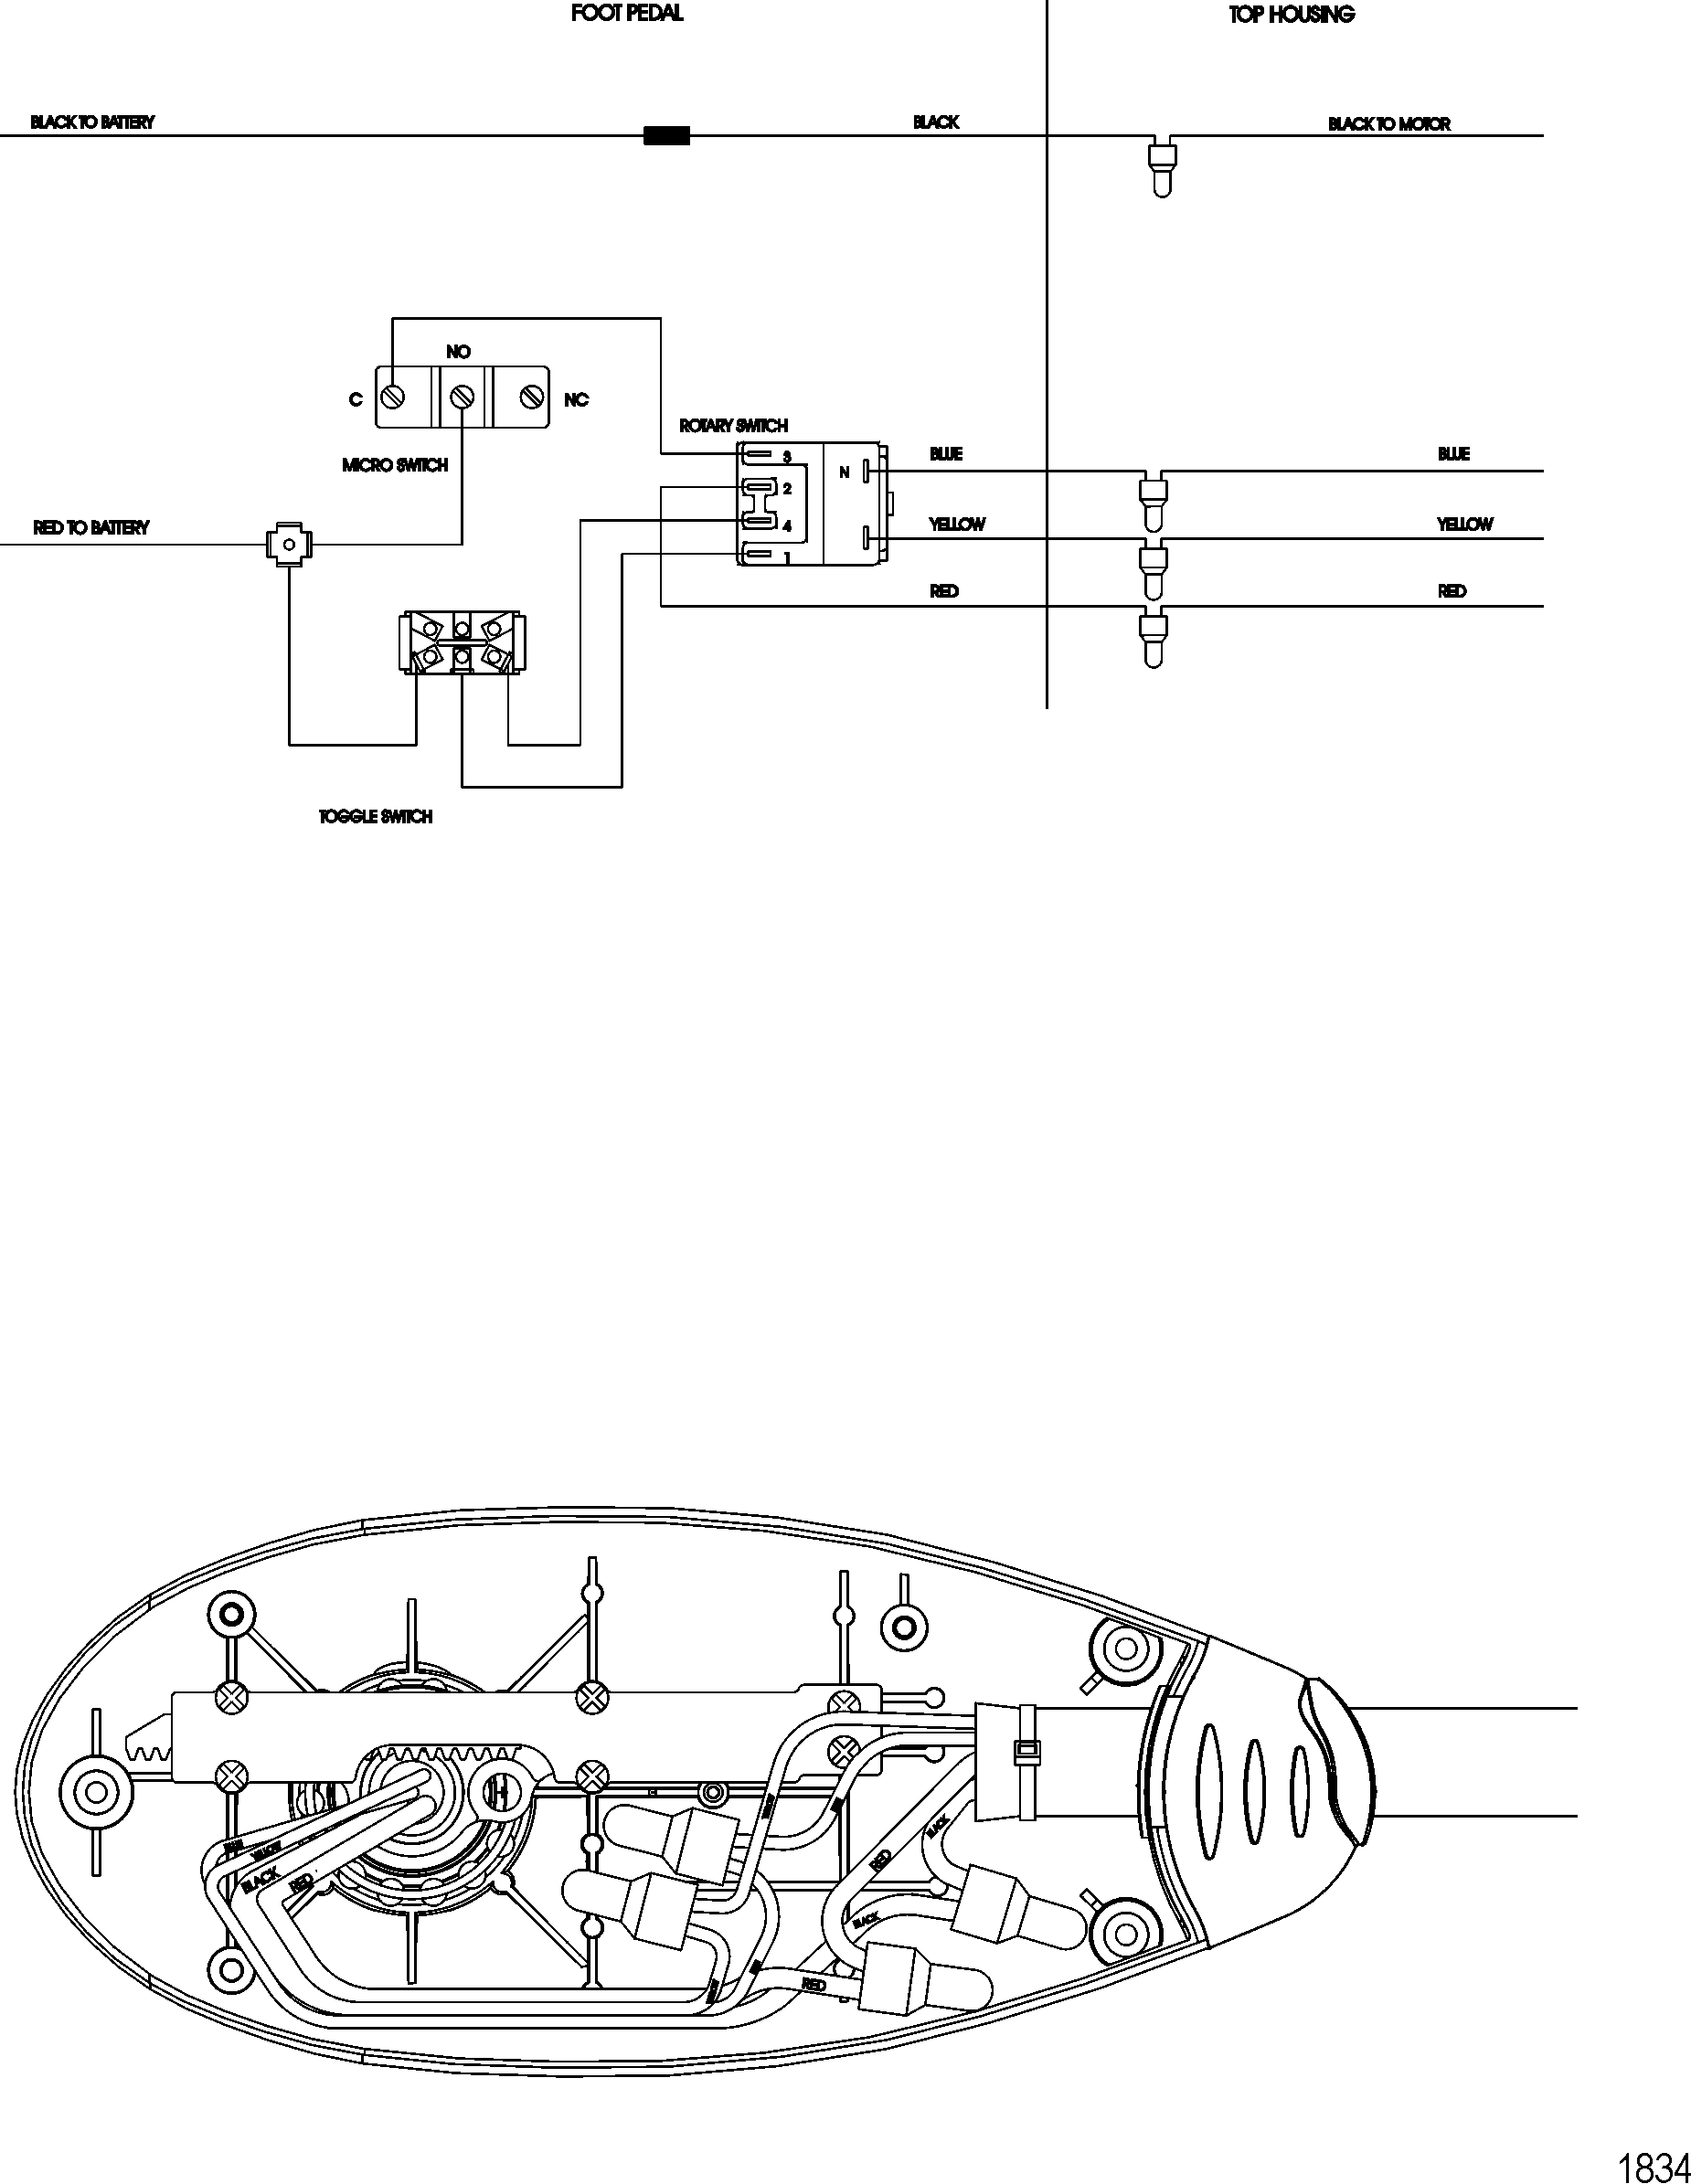 1834 ������� ��������� trolling motor motorguide pro series 9b000001 motorguide foot pedal wiring diagram at mifinder.co